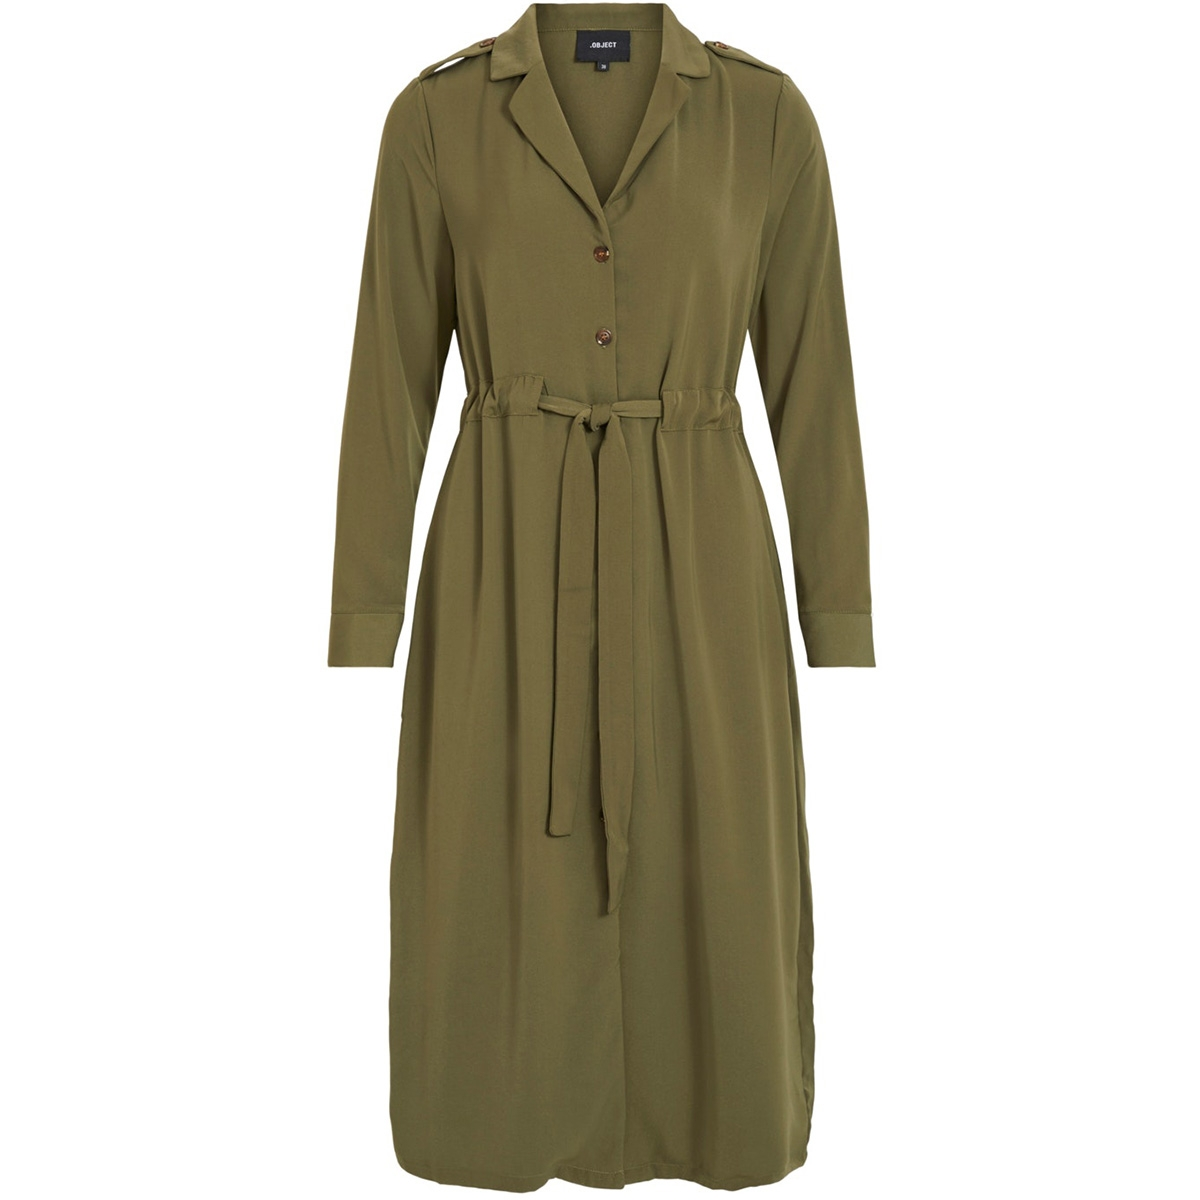 objmae l/s dress a q 23032727 object jurk burnt olive